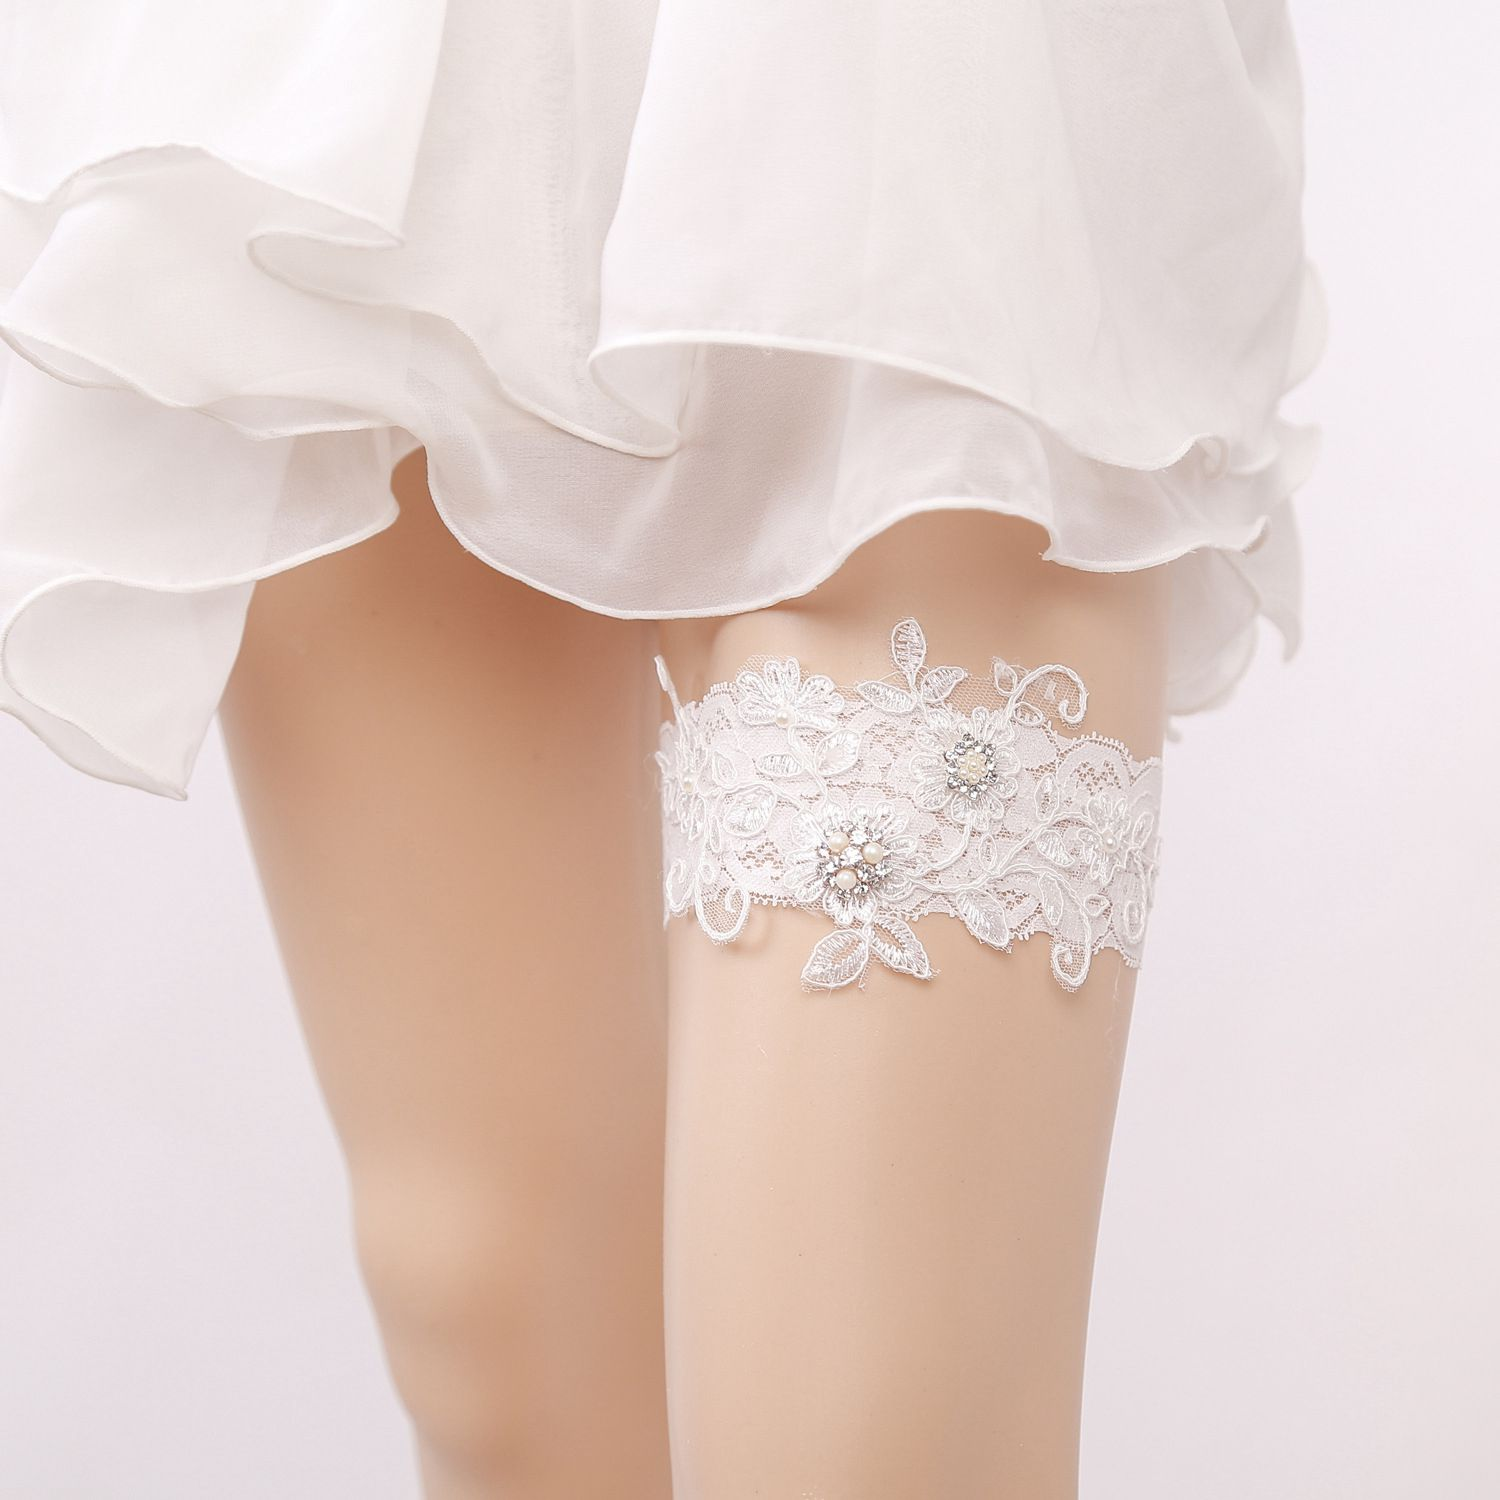 Underwear & Sleepwears White Lace Flower Gtglad New Sexy Hot Bride Wedding Garter Lace Prom Get Garters For Women/female/bride Thigh Ring Bridal Leg Cheapest Price From Our Site Women's Intimates